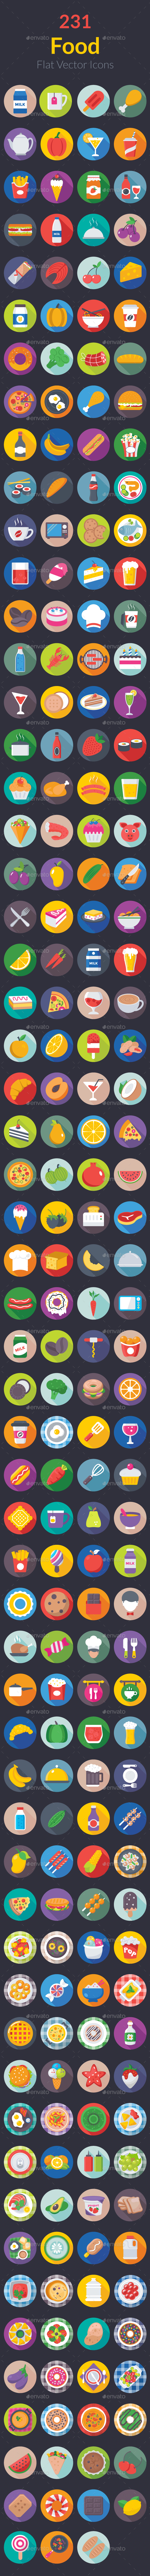 GraphicRiver 231 Flat Food Icons 20741199